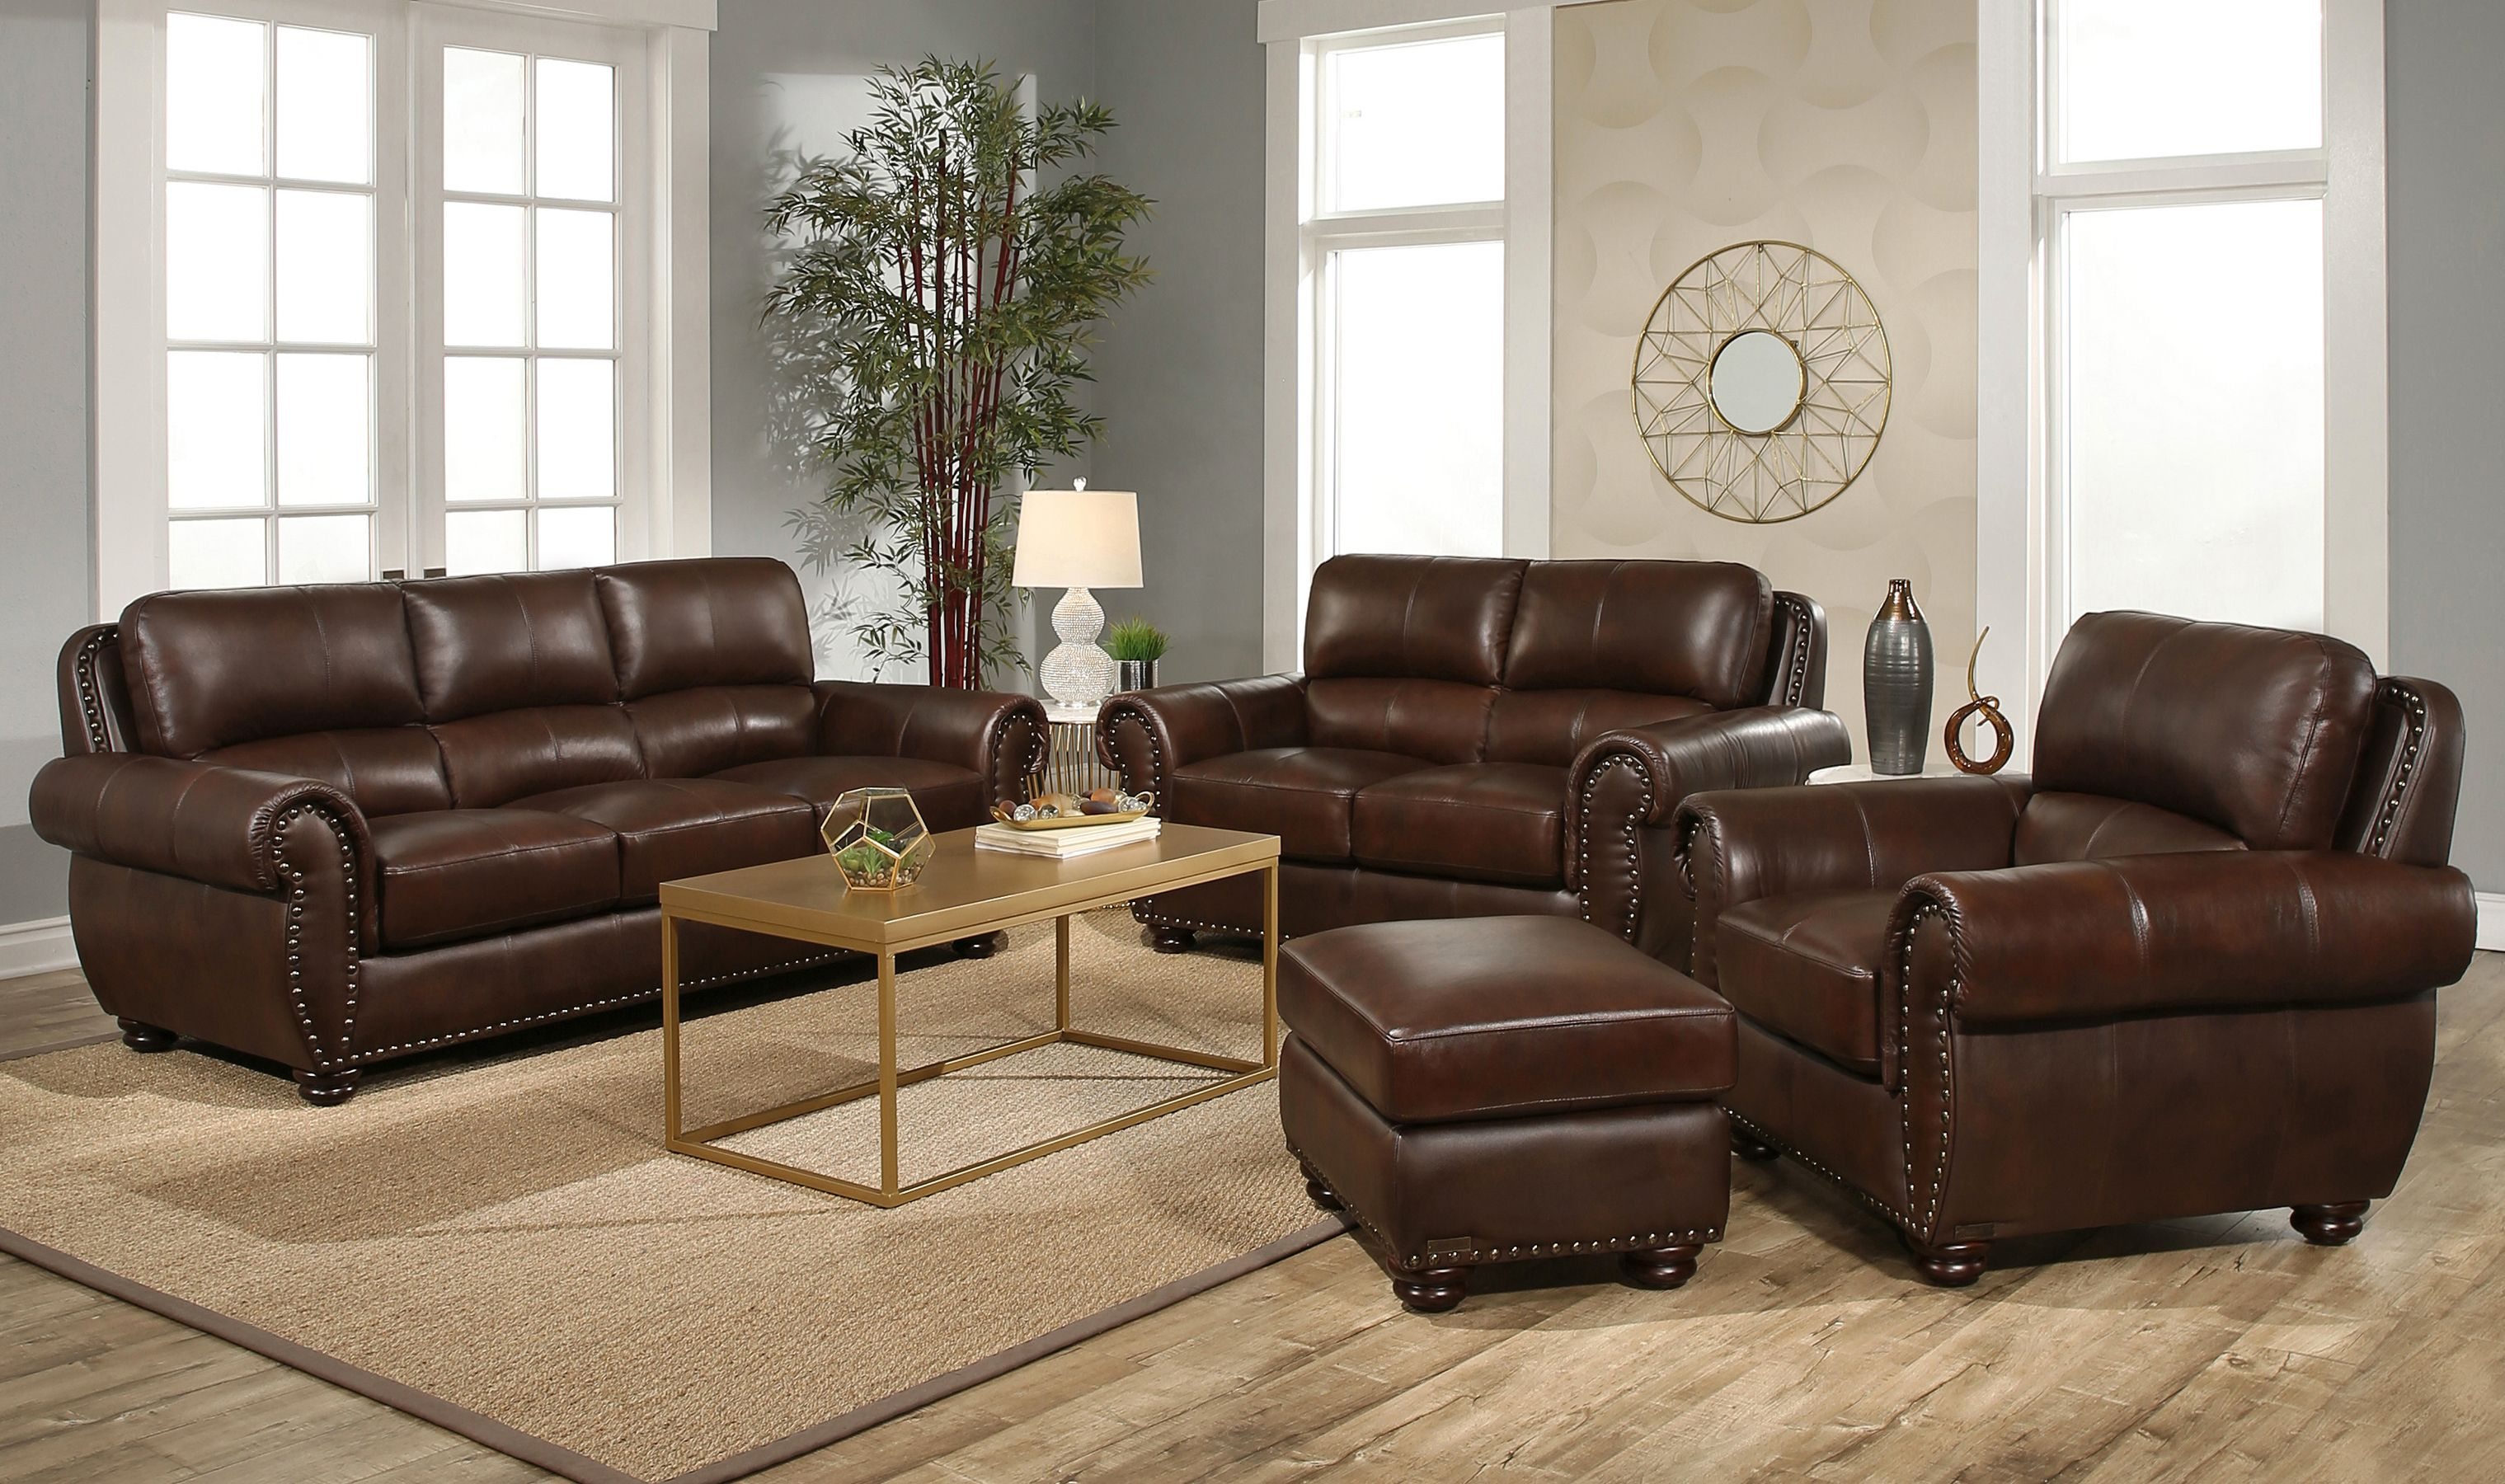 Austin 4 Piece Top Grain Leather Living Room Set intended for Costco Living Room Sets